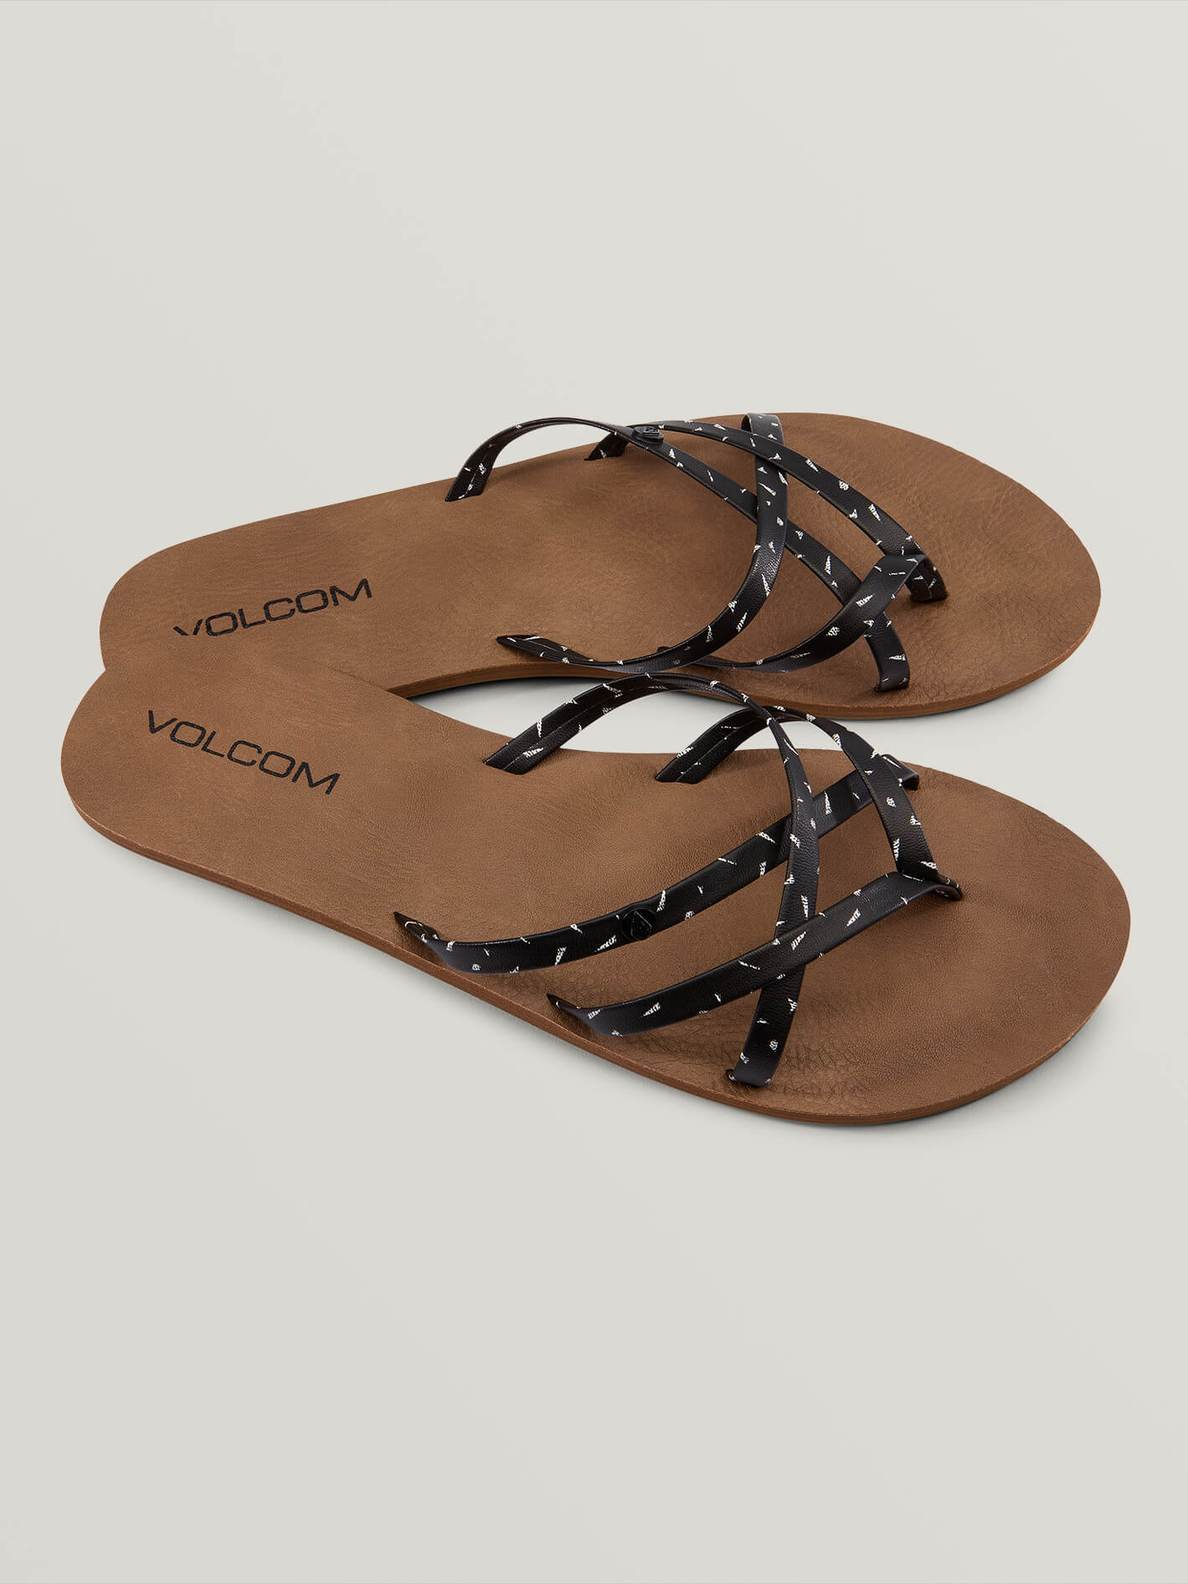 Volcom Women's New School Sandals - 88 Gear